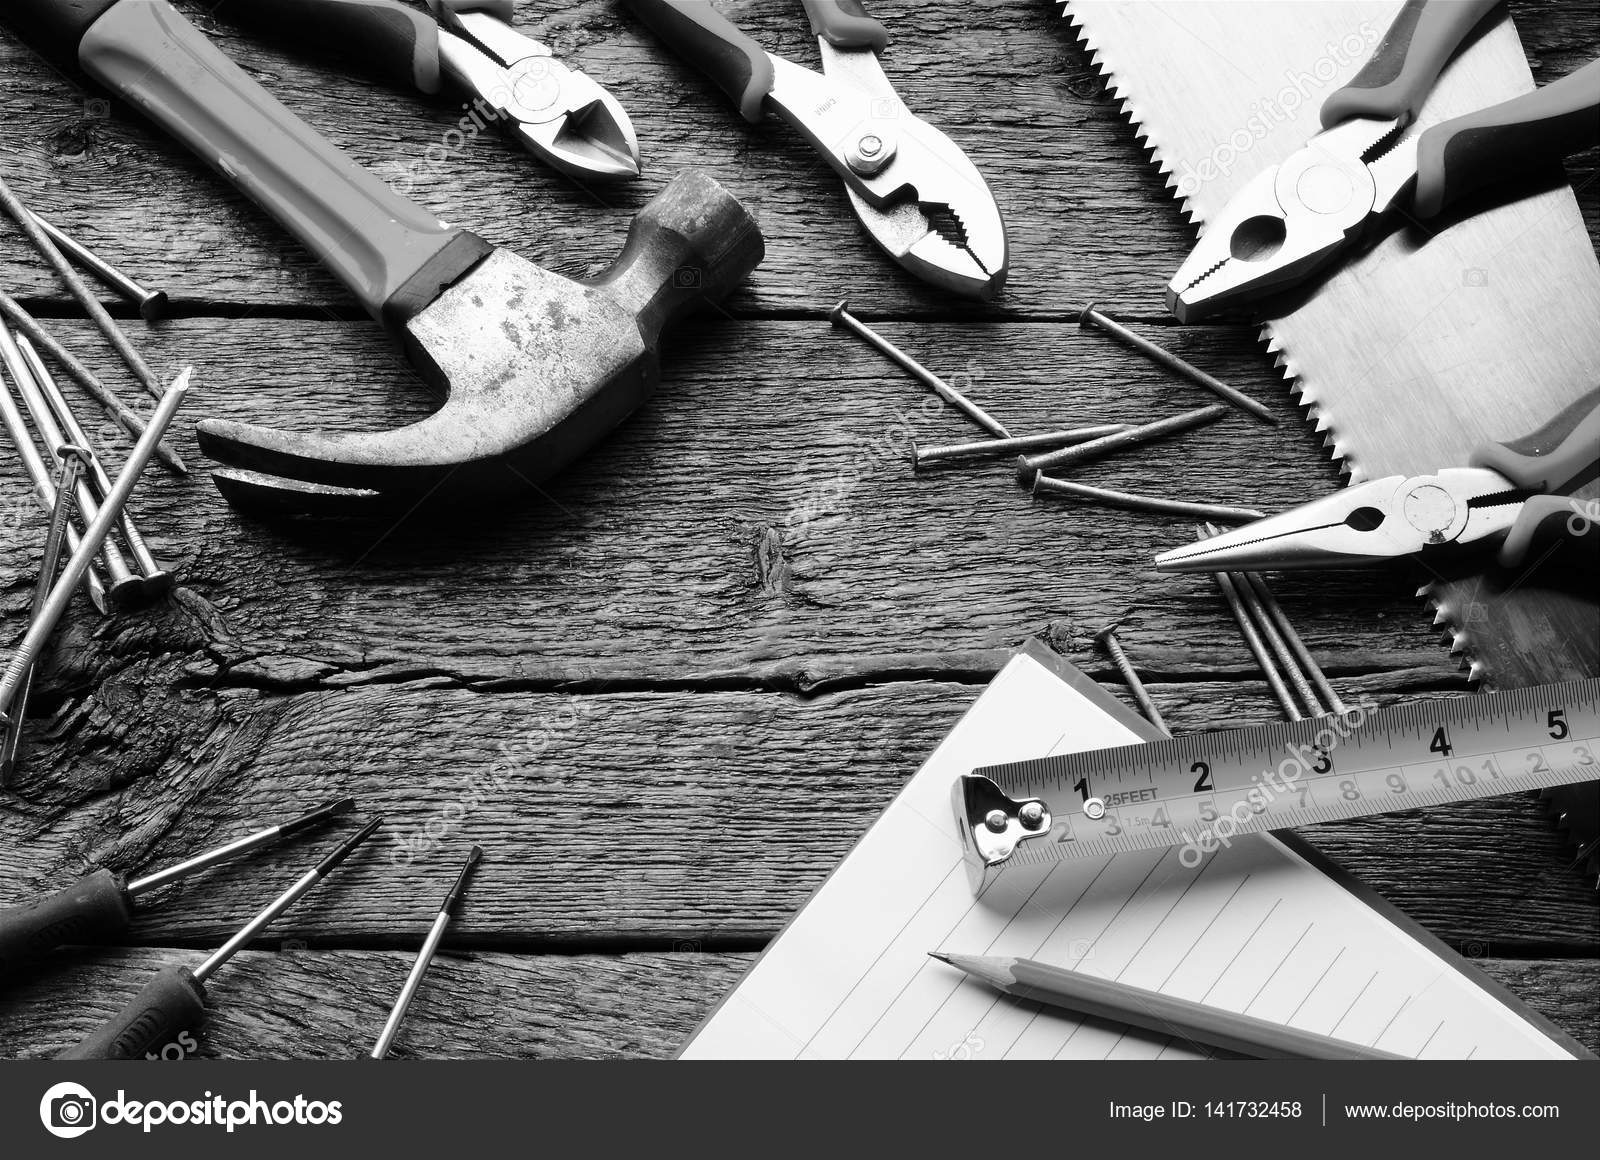 Wondrous Work Bench And Hand Tools Background Stock Photo Dailytribune Chair Design For Home Dailytribuneorg